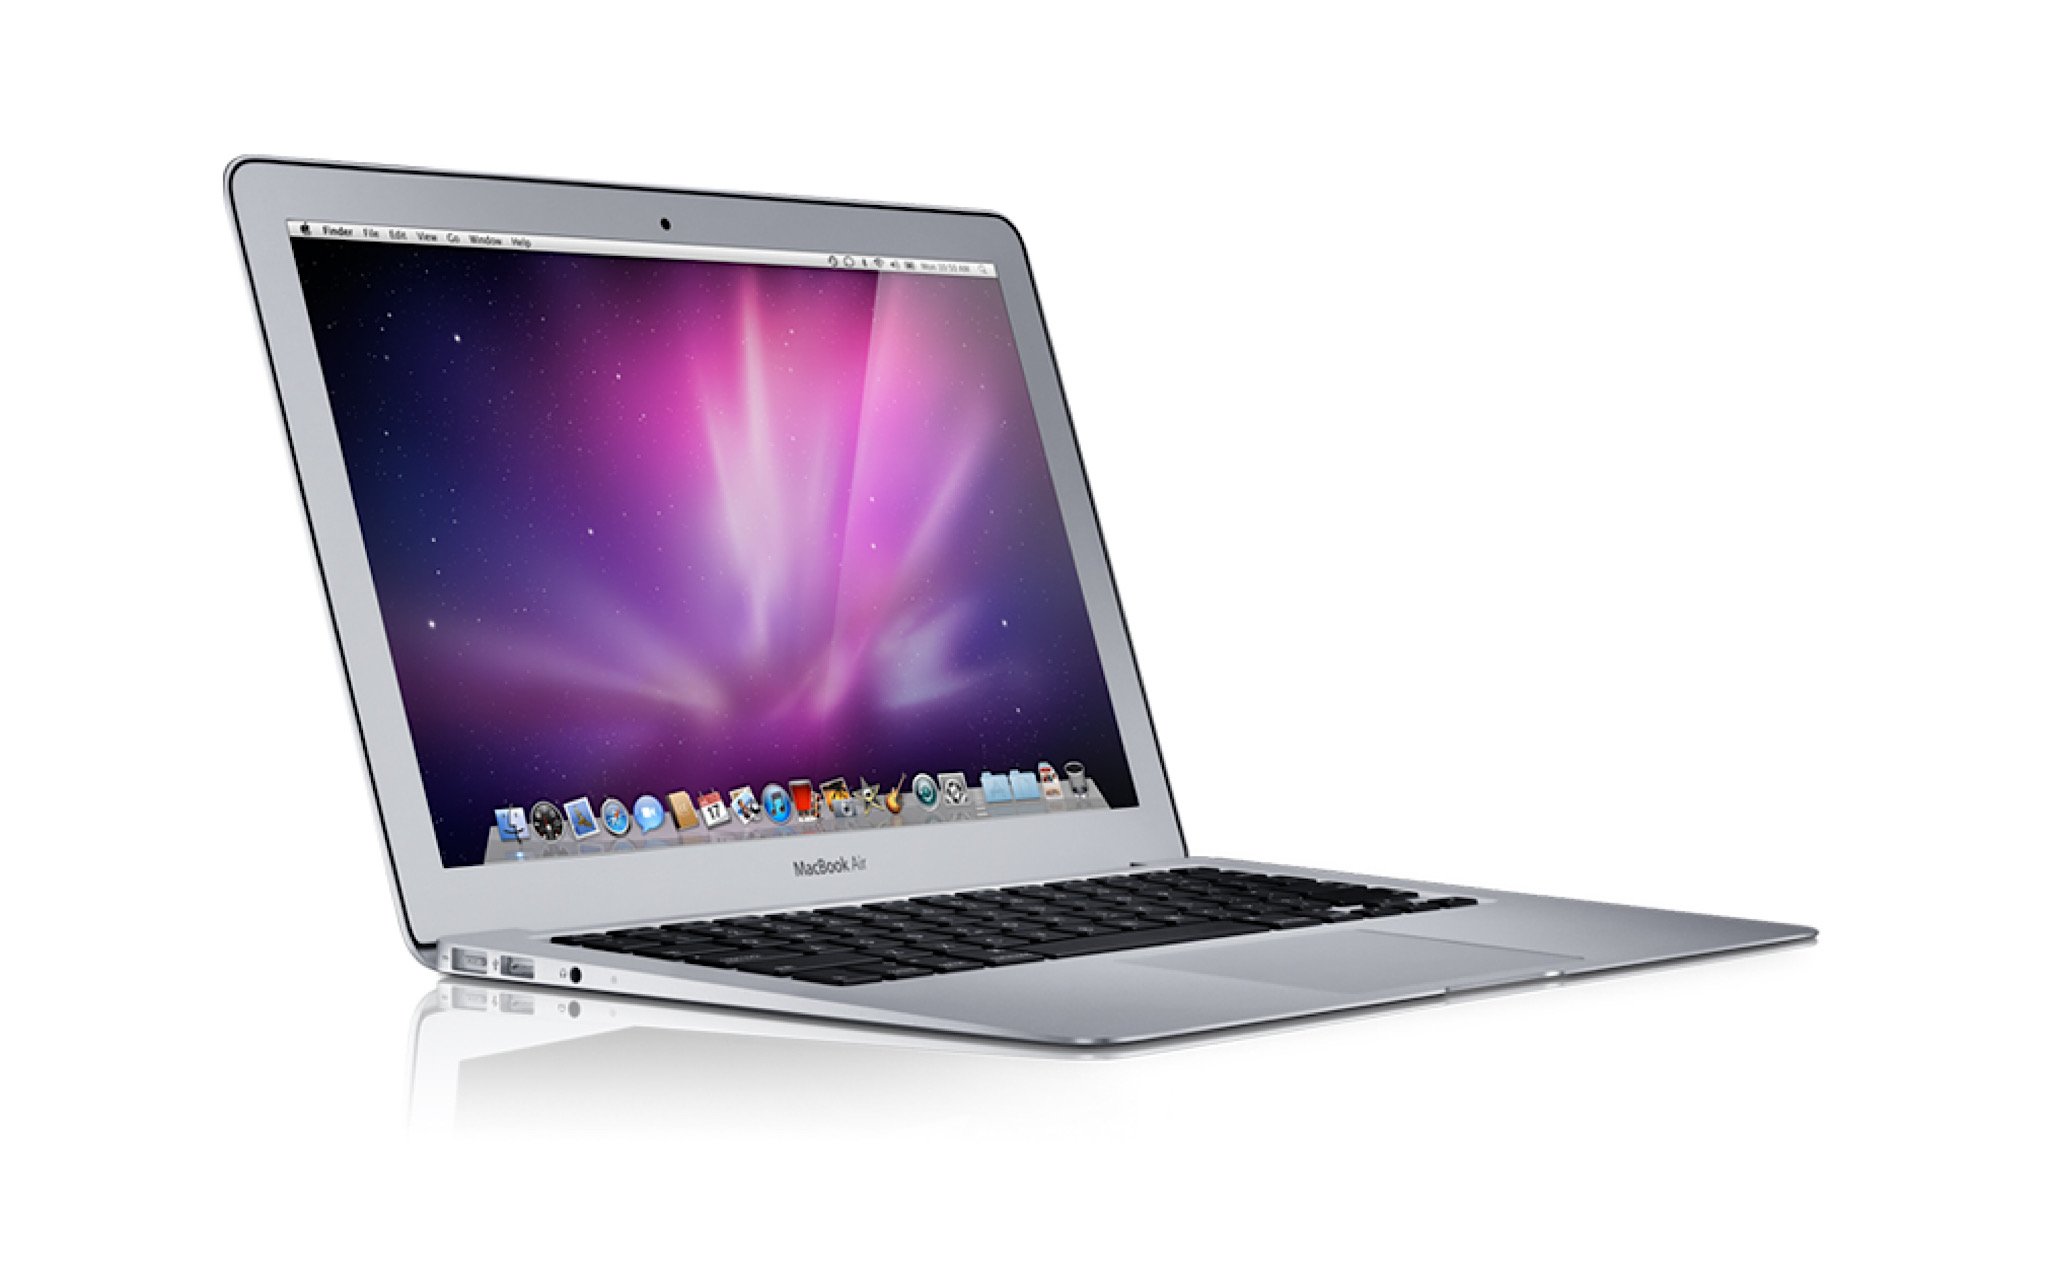 Macbookair_2010.JPG